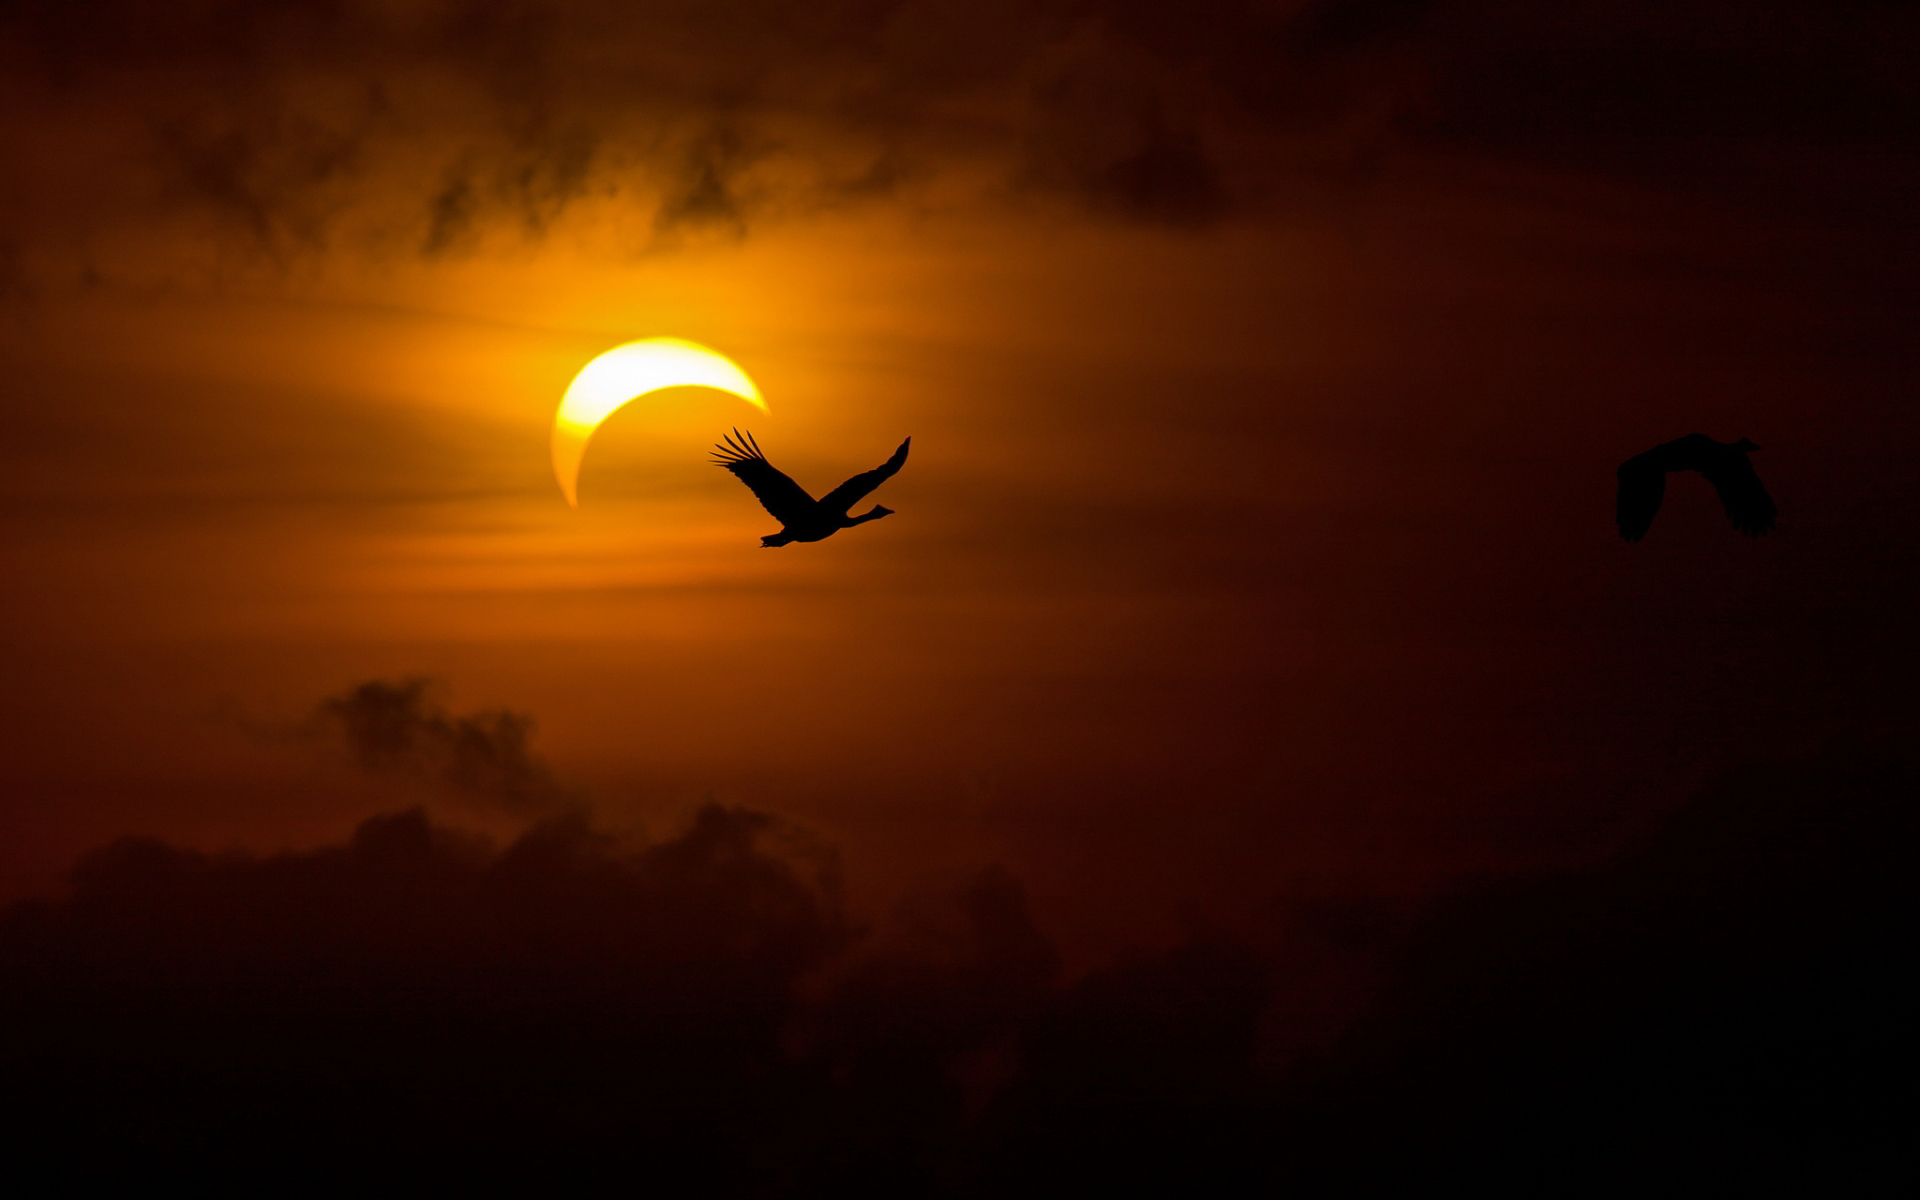 High Res Solar Eclipse Wallpapers #891000 Picture